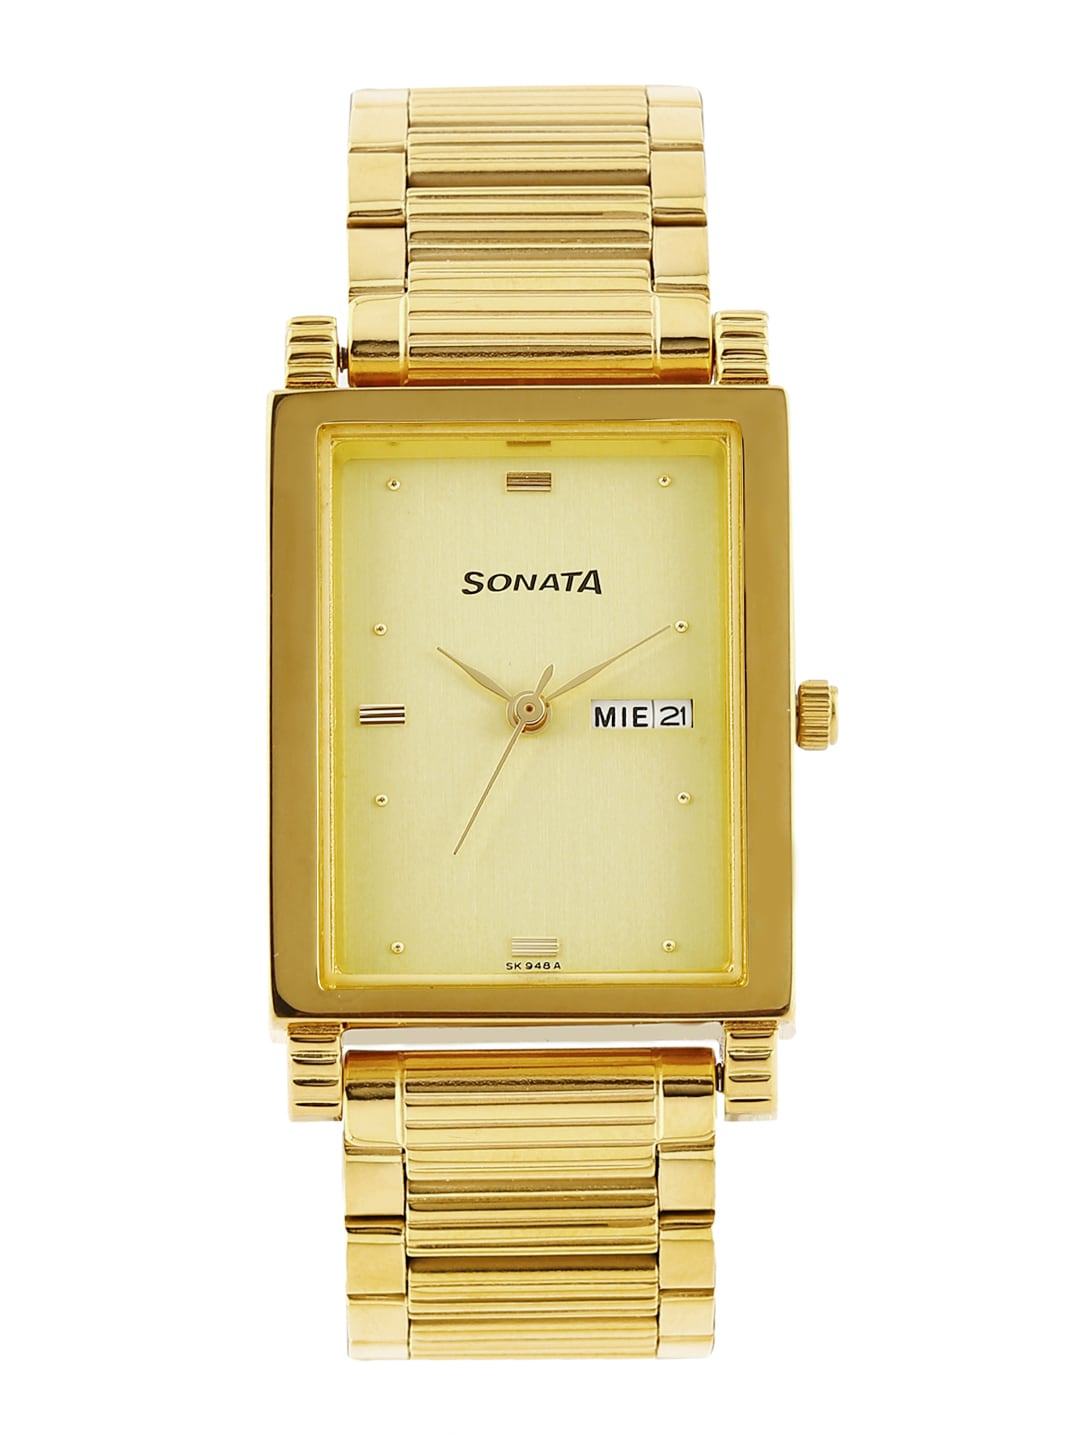 Sonata Men Gold-Toned Dial Watch NF7058YM05A